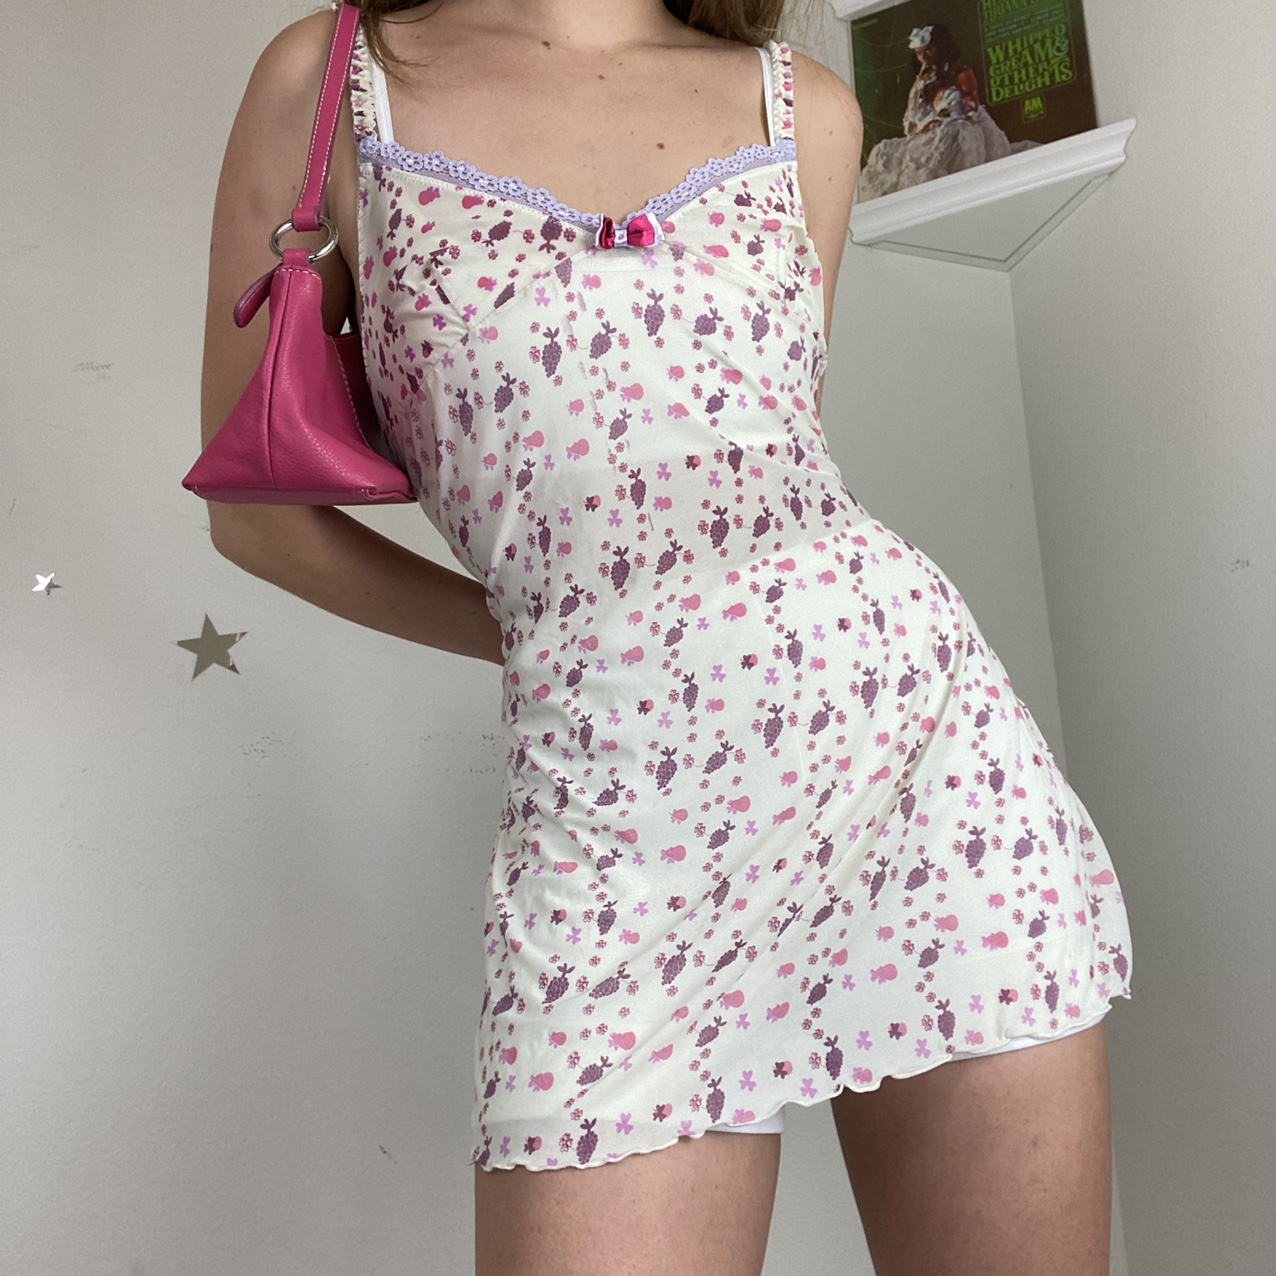 Product Image 1 - Sheer micromesh stretchy floral slip